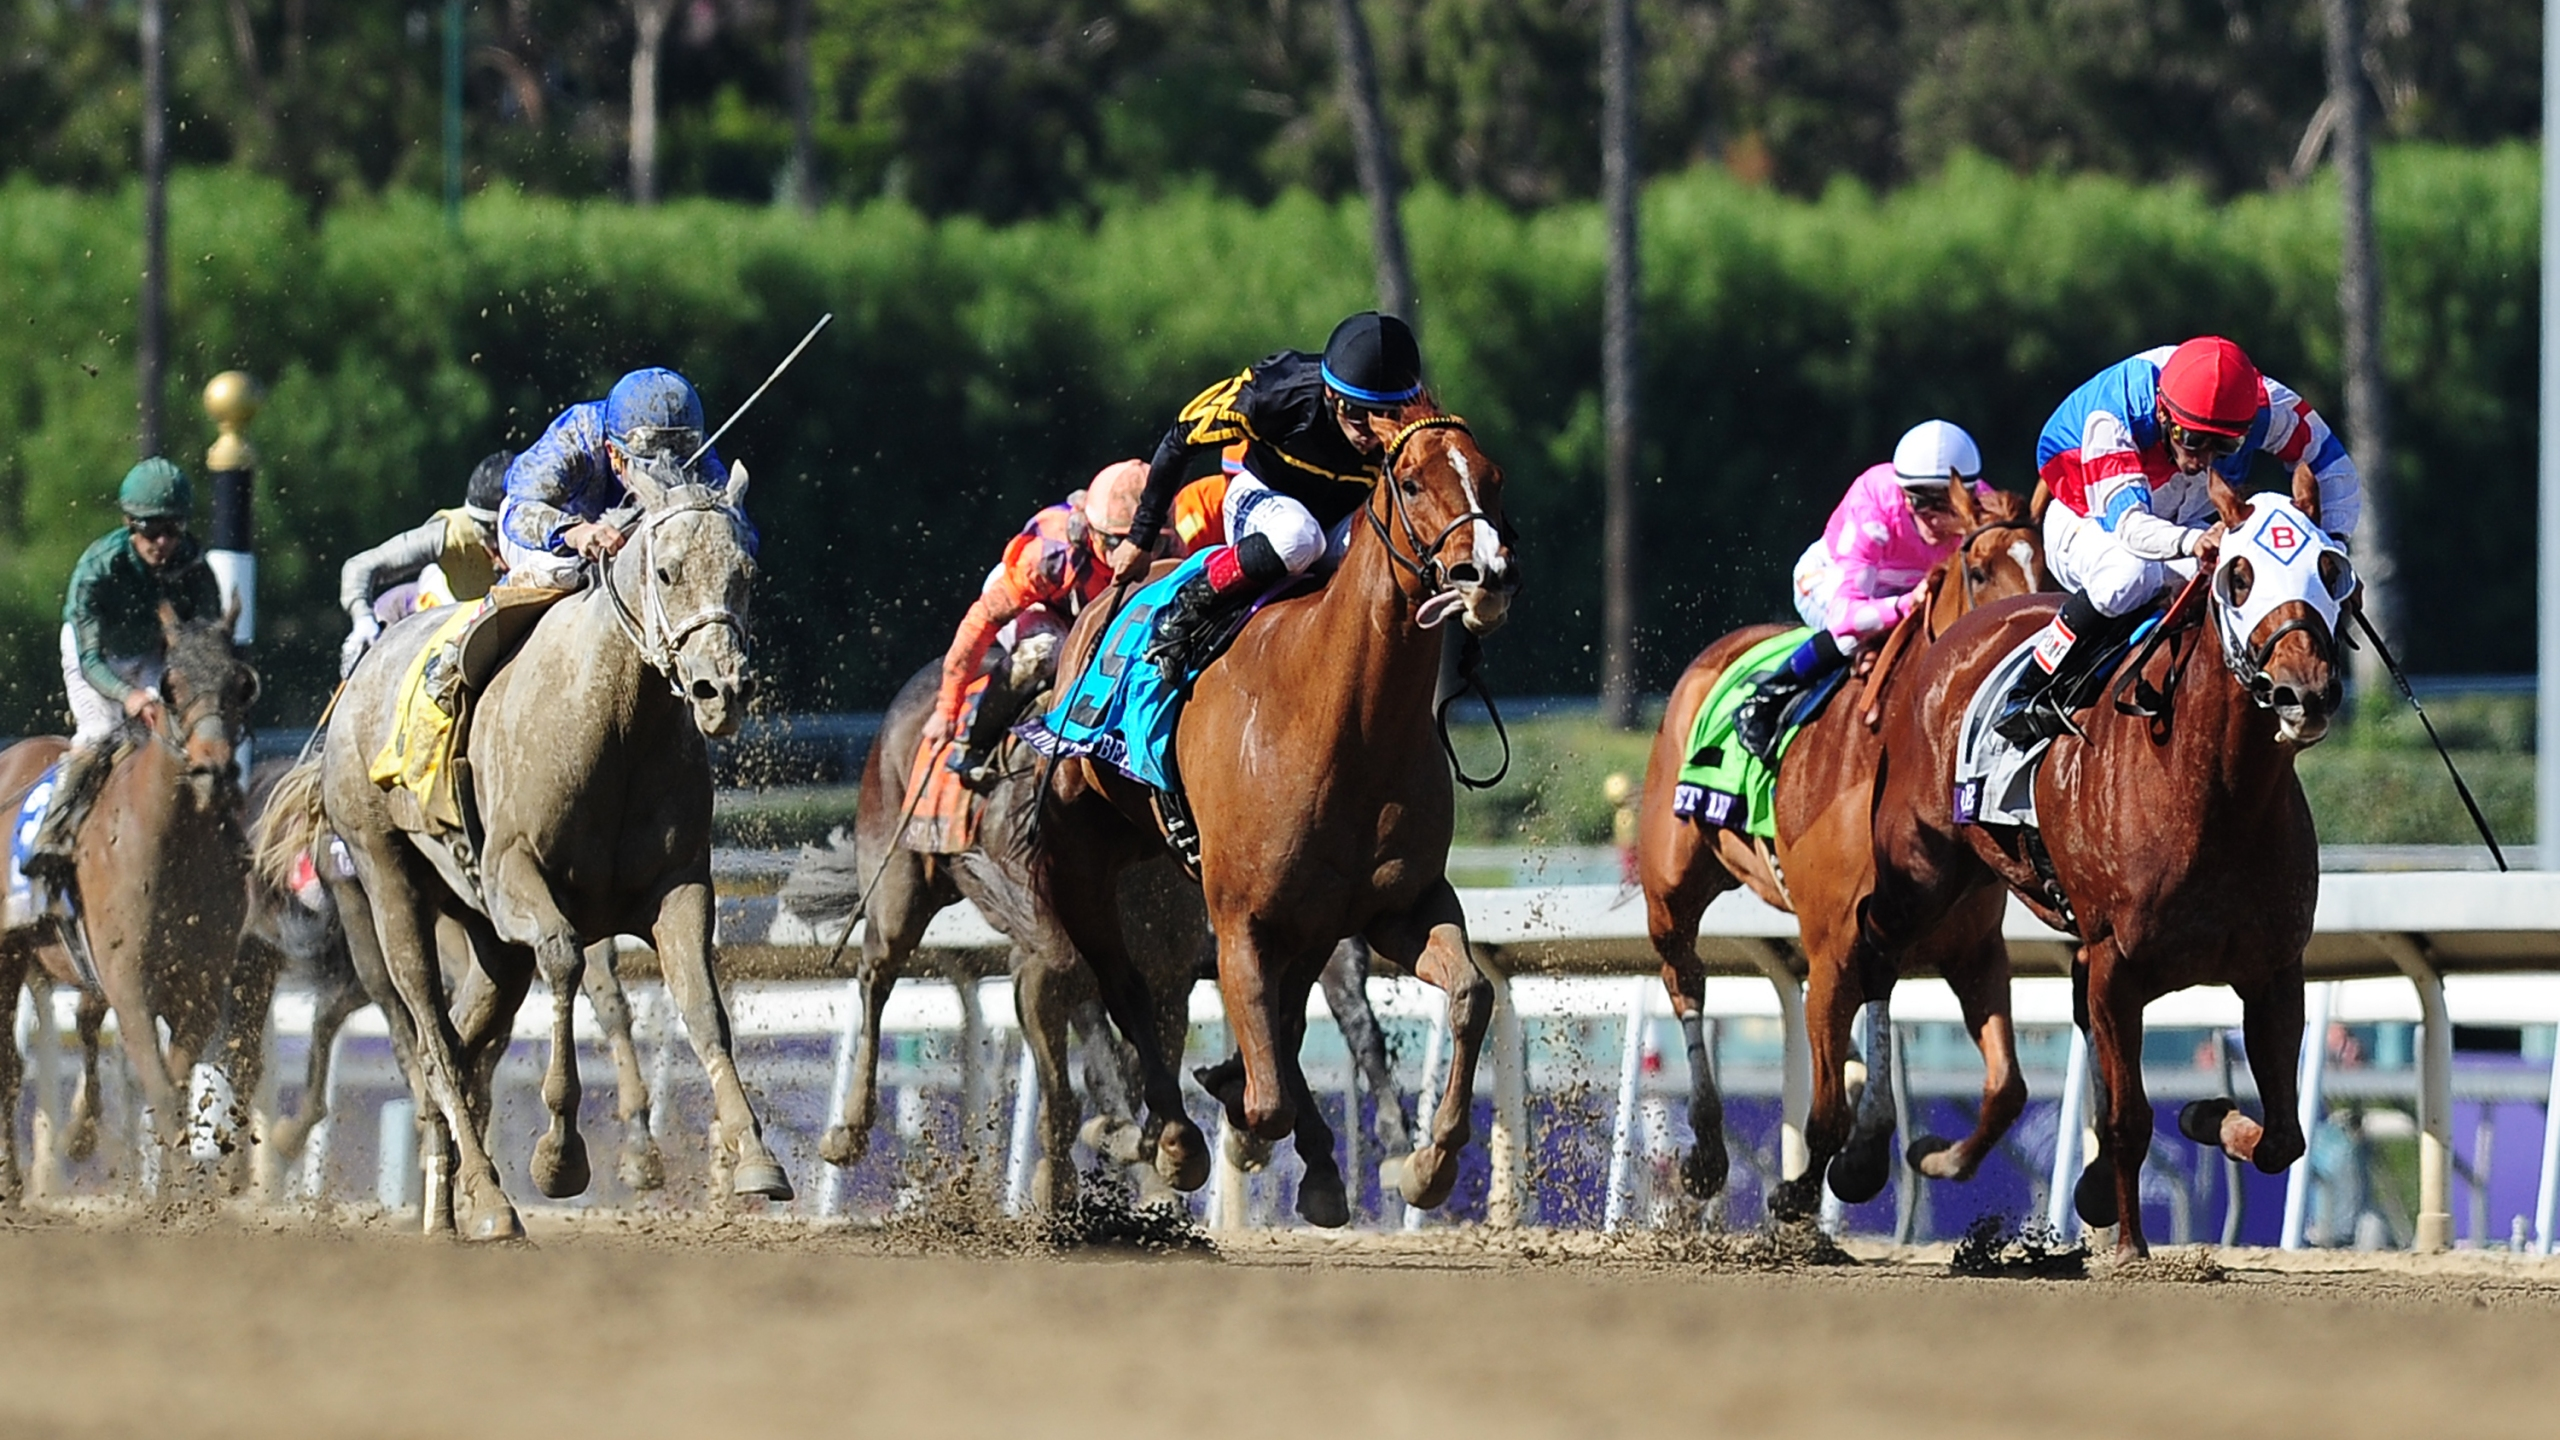 Horses run during a race at the Santa Anita Park race track in Arcadia on Nov. 2, 2013. (Credit: Frederic J. Brown/AFP/Getty Images)